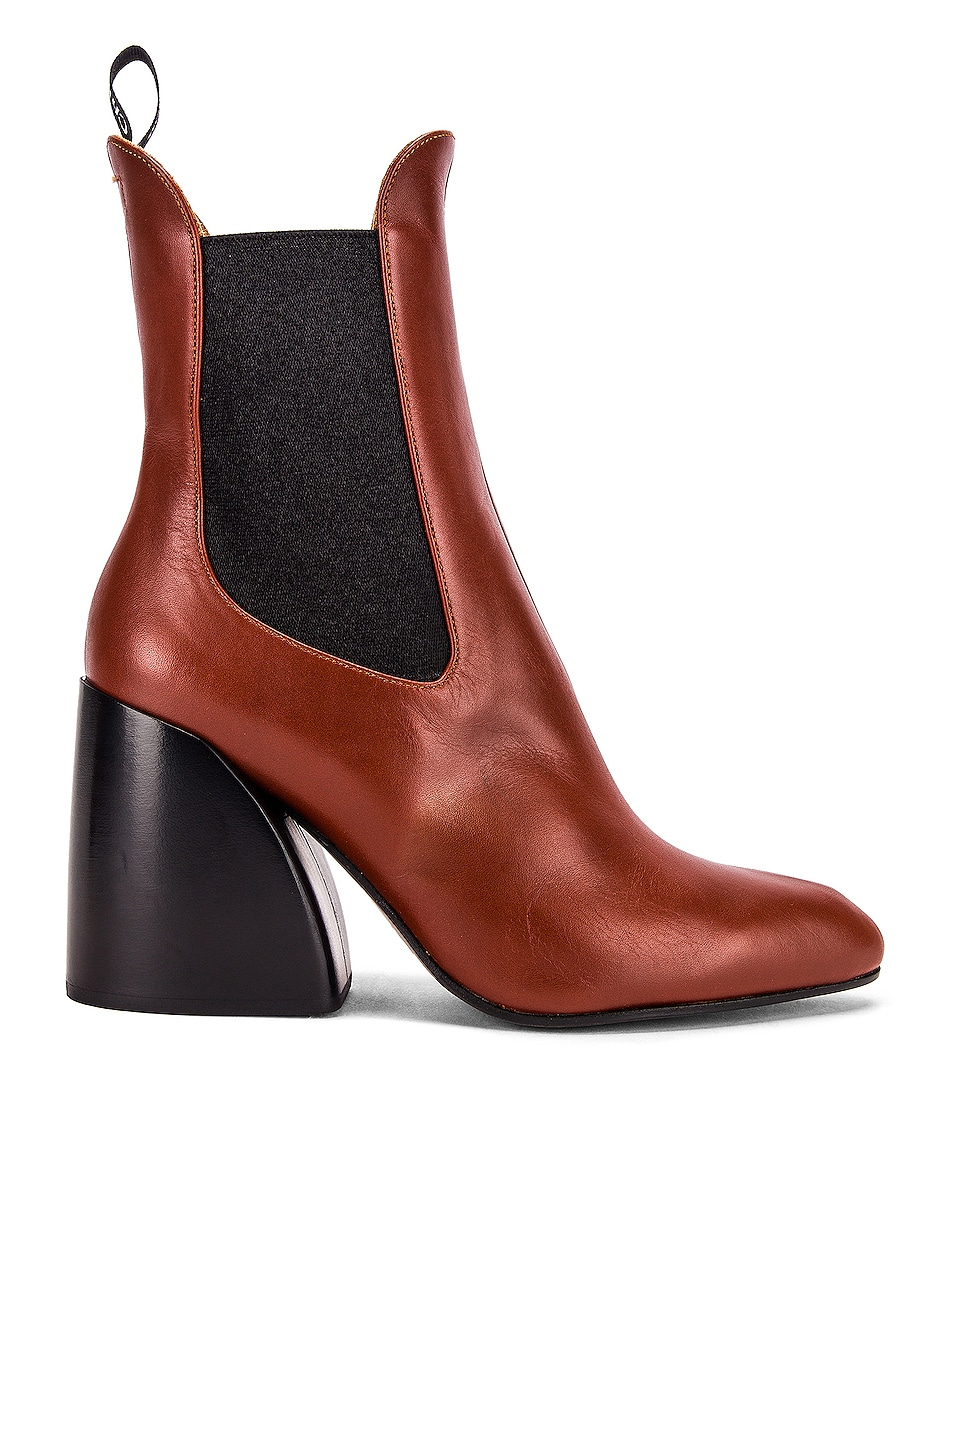 Image 1 of Chloe Leather Ankle Booties in Brown